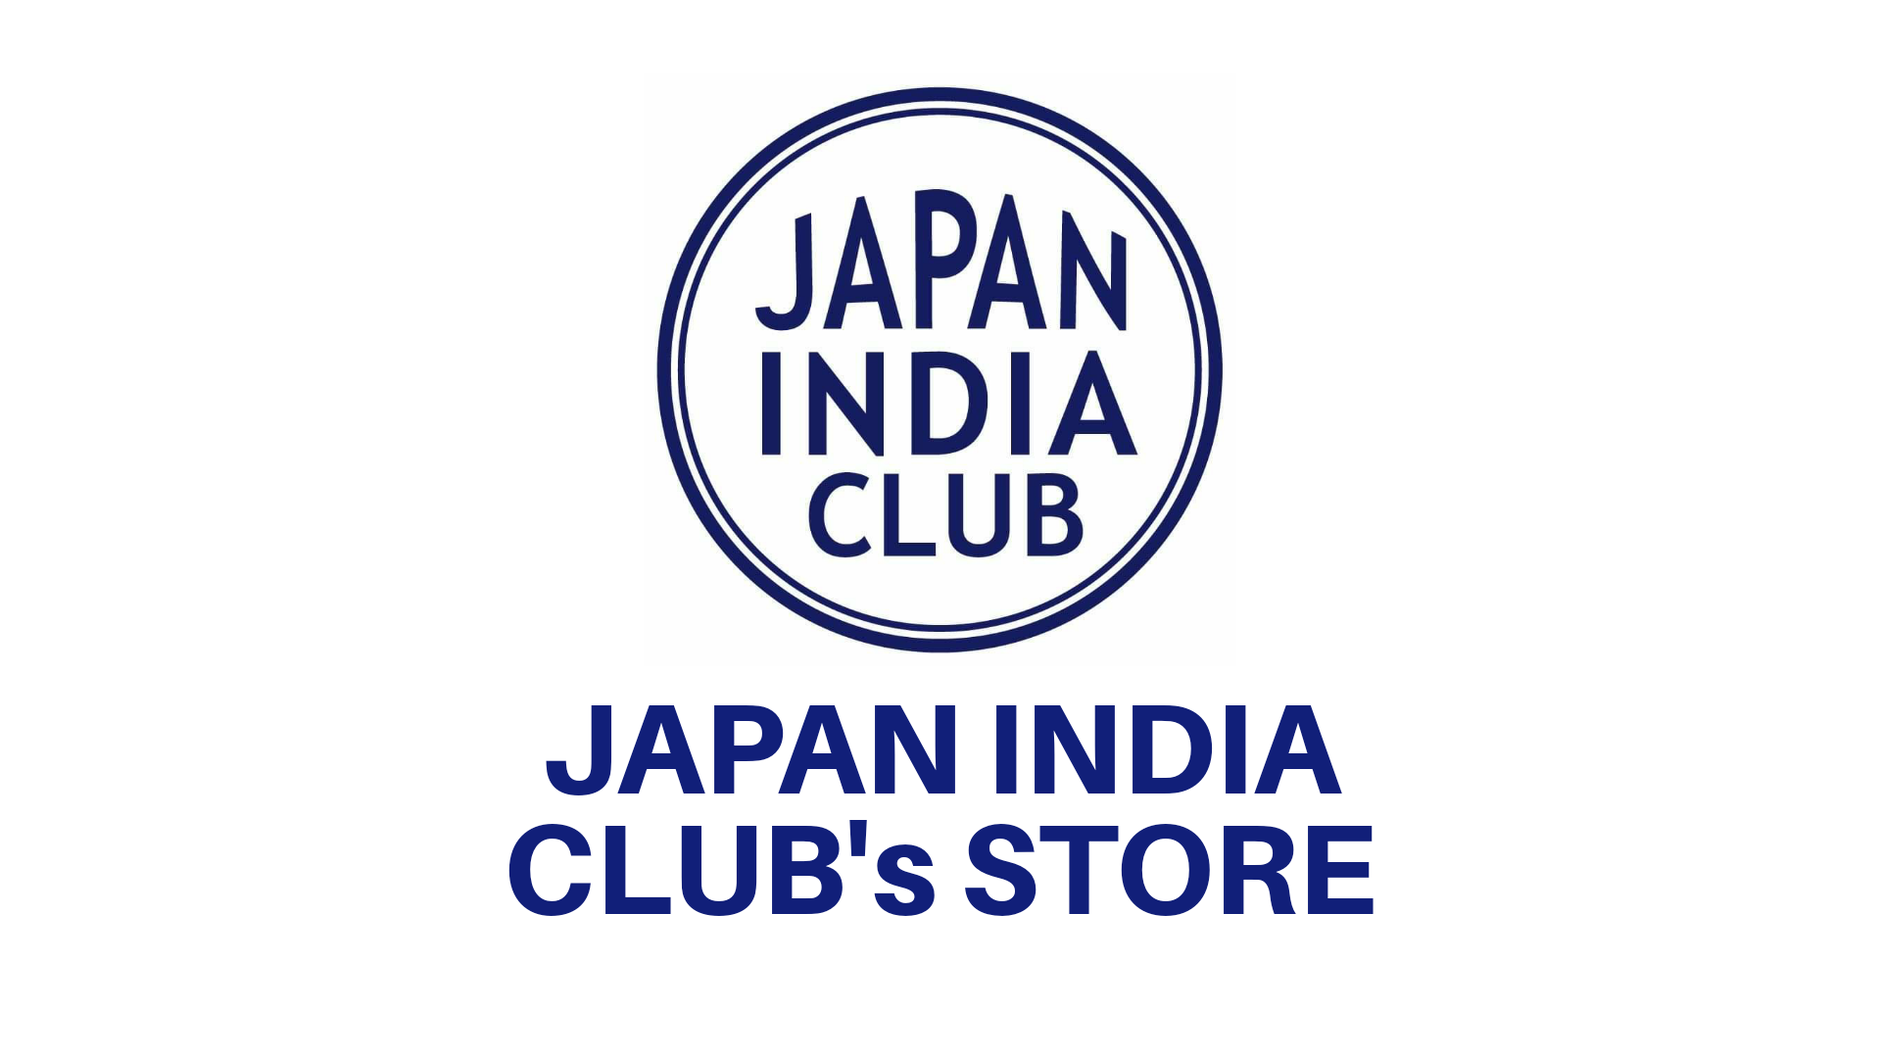 JAPAN INDIA CLUB's STORE